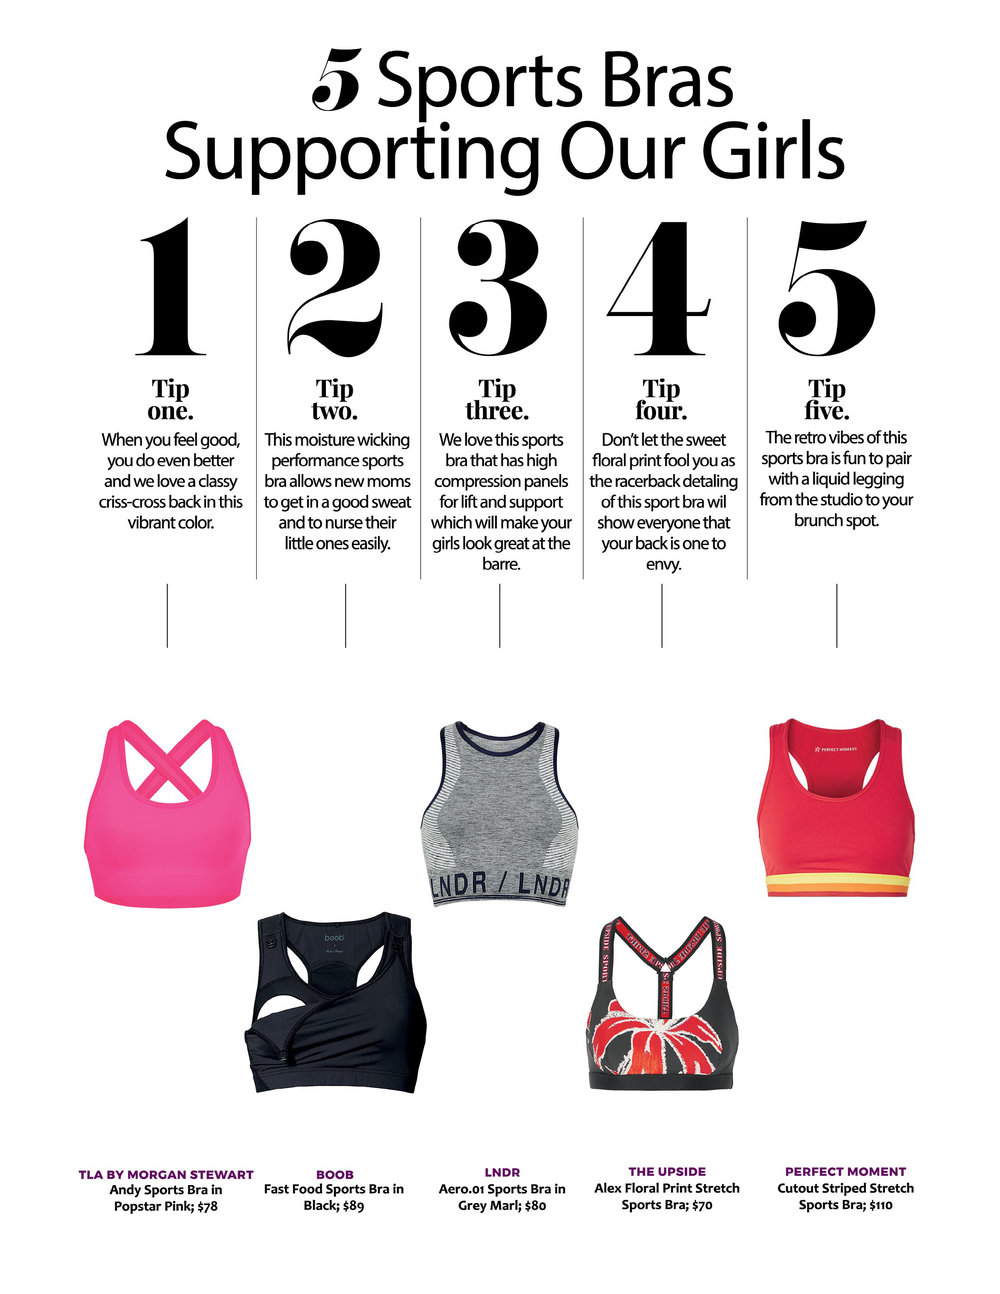 AM JUL 5 SPORTS BRAS SUPPORTING OUR GIRLS.jpg